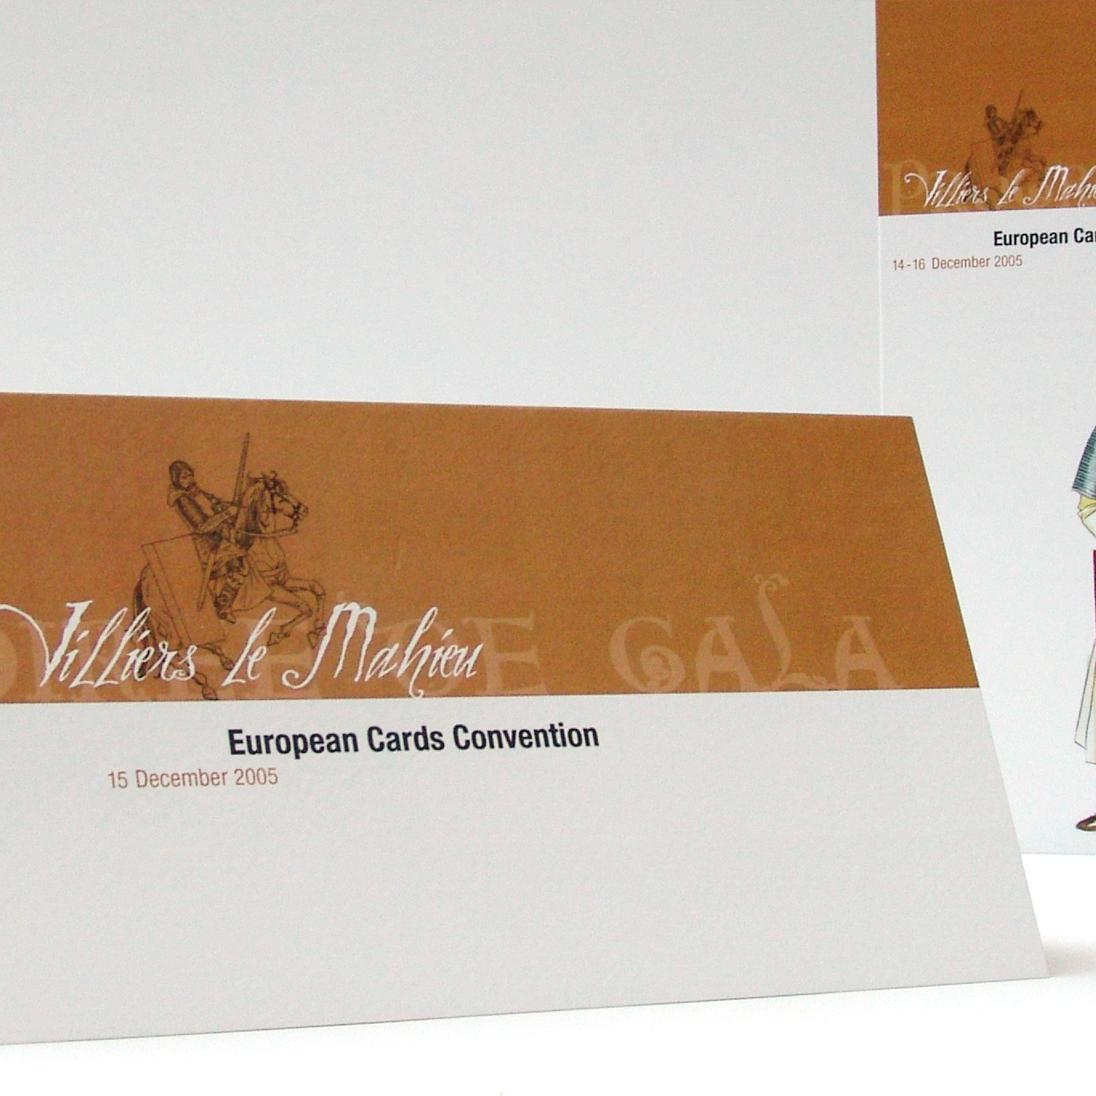 Eurotrafic - European Cards Convention